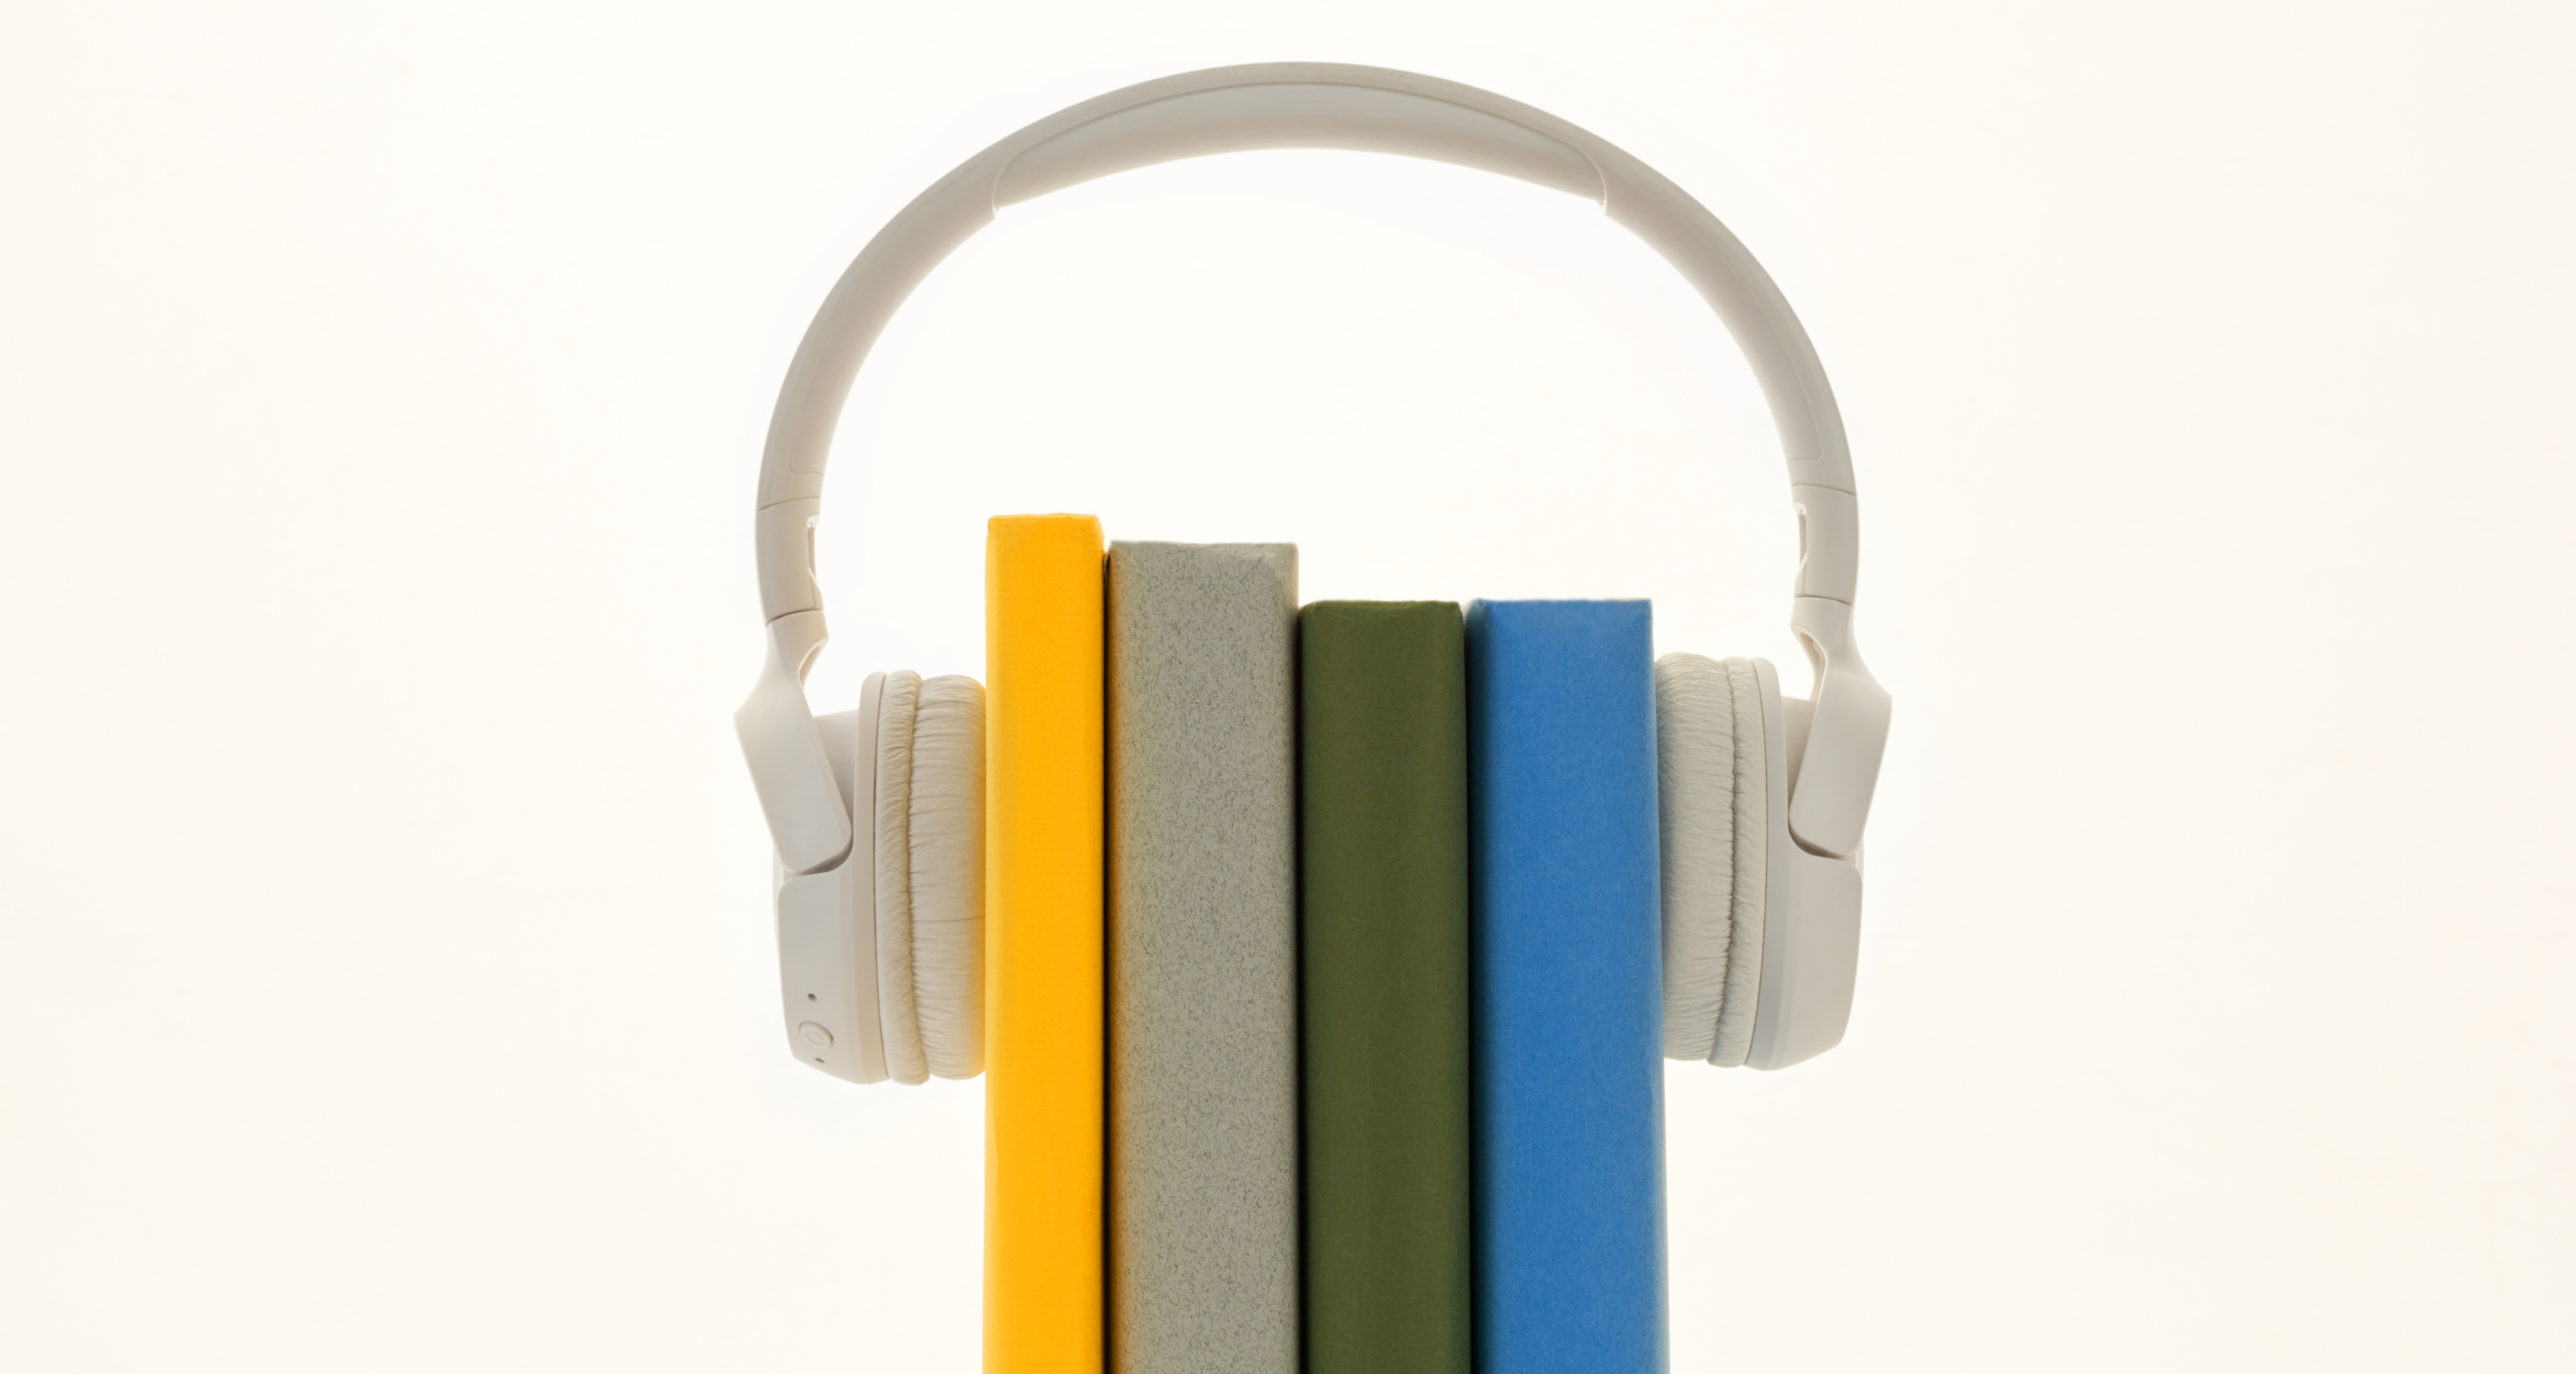 Books Between Headphones by Sound On from Pexels